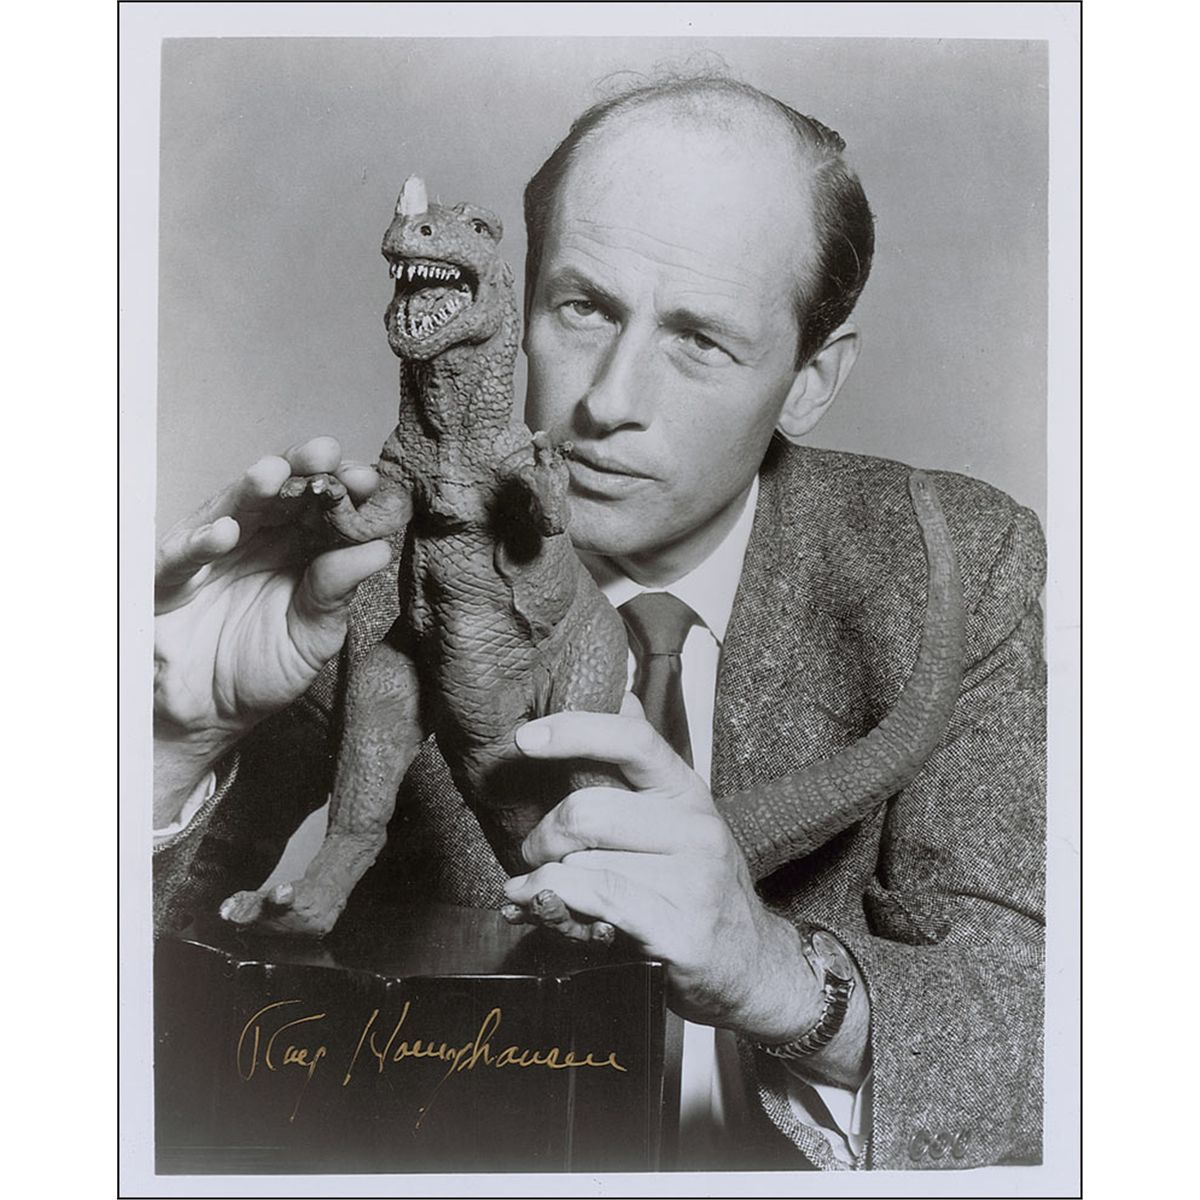 ray harryhausen documentary